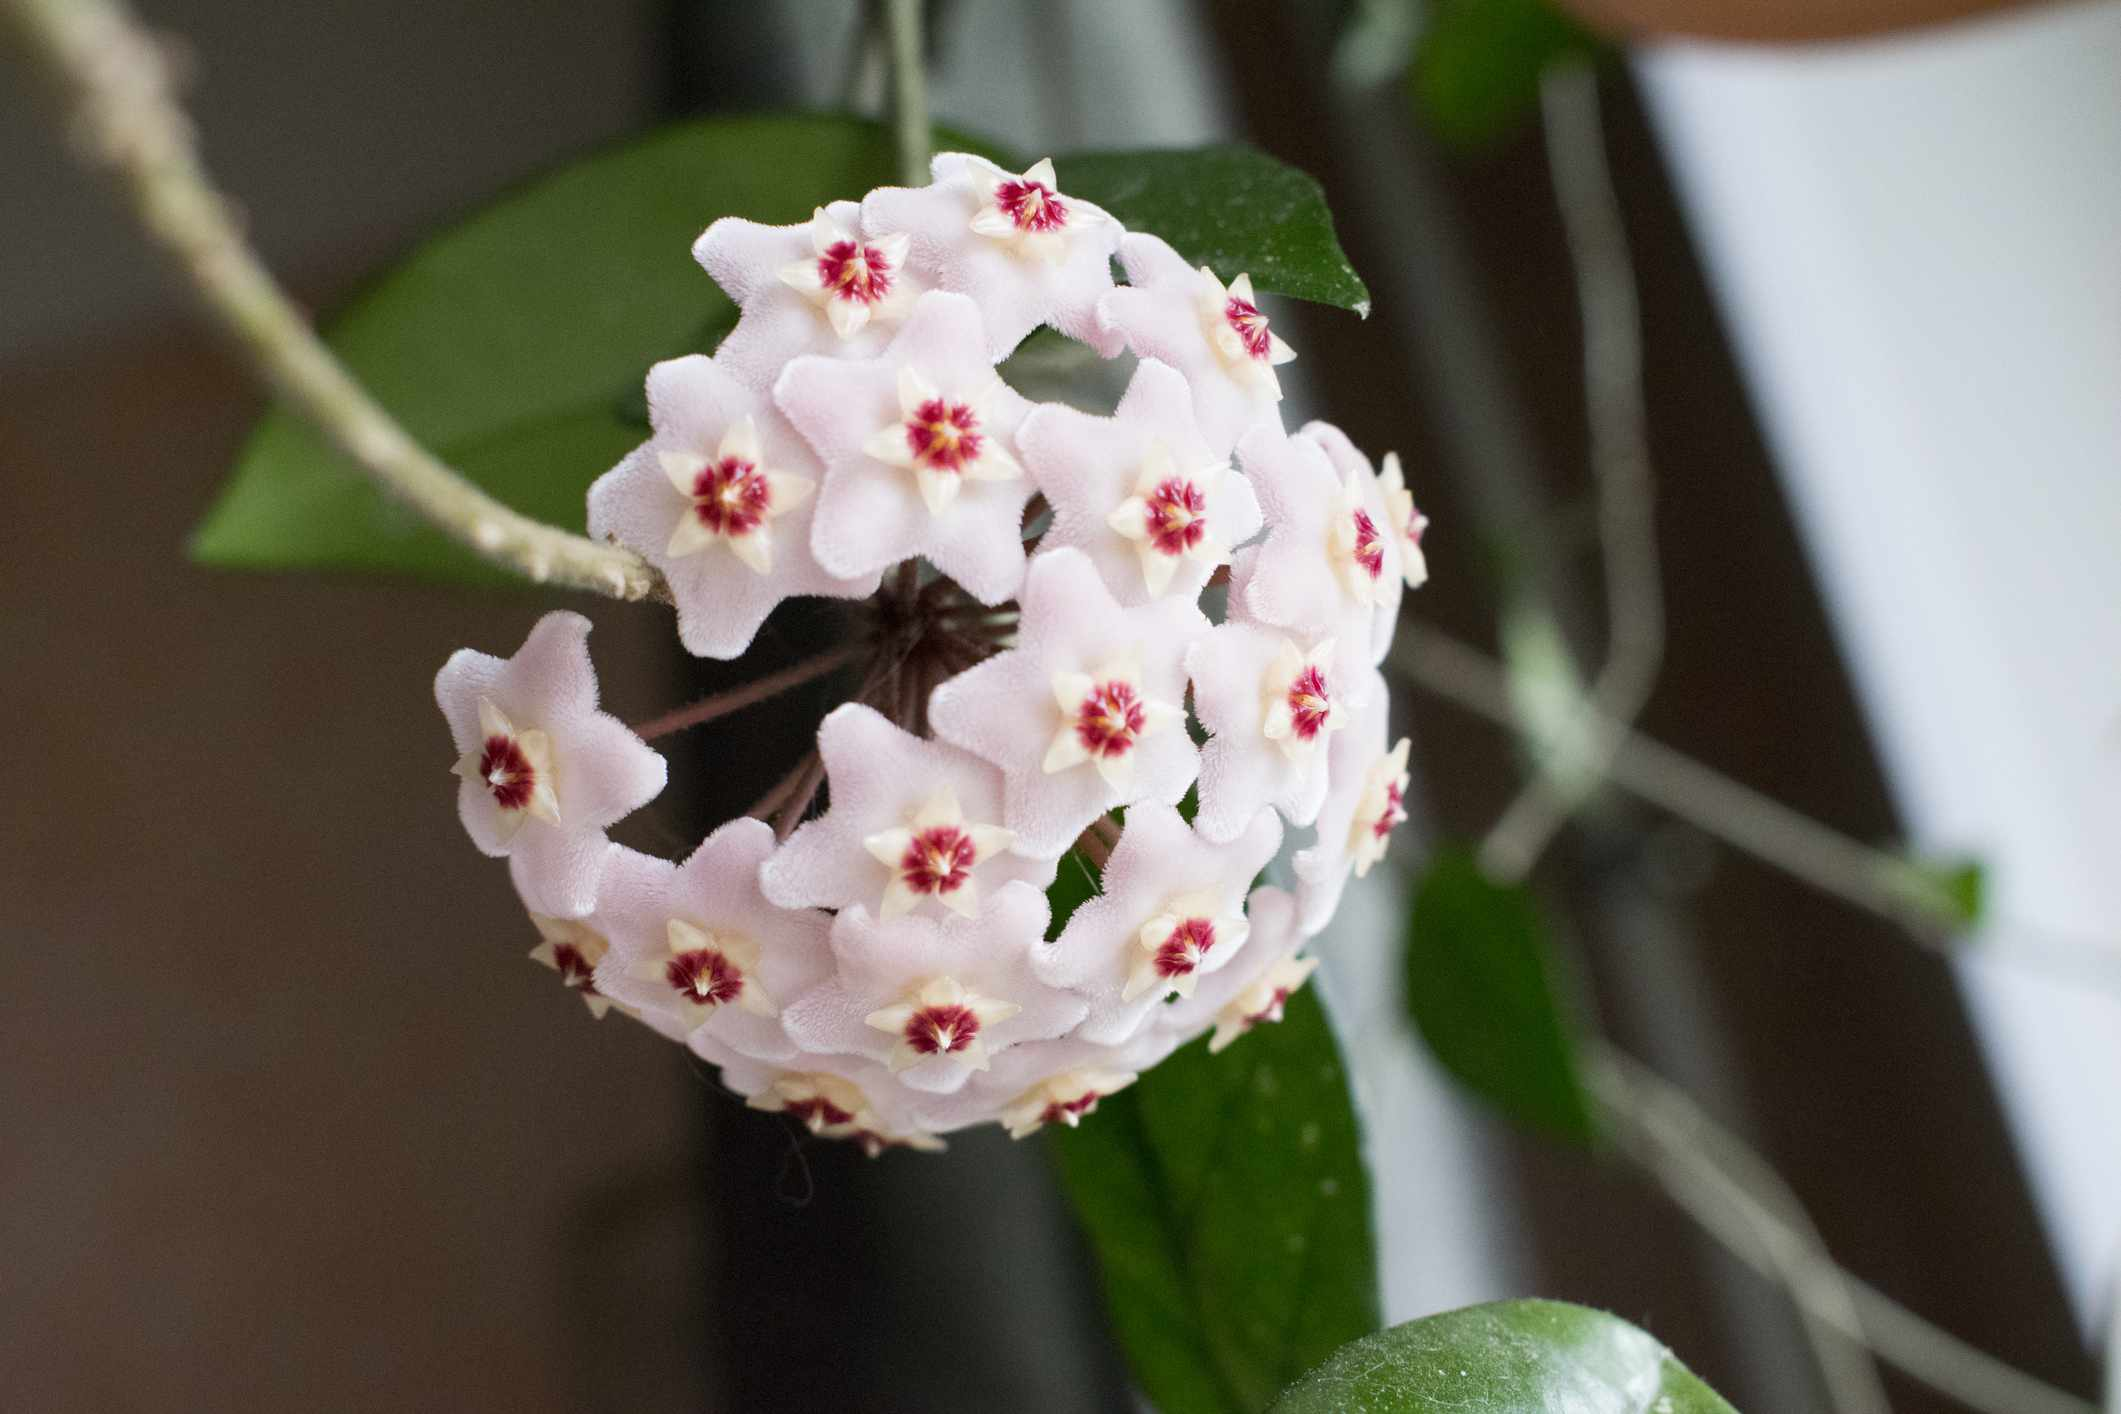 Close-up detail photo of flower wax plant or Hoya Carnosa.